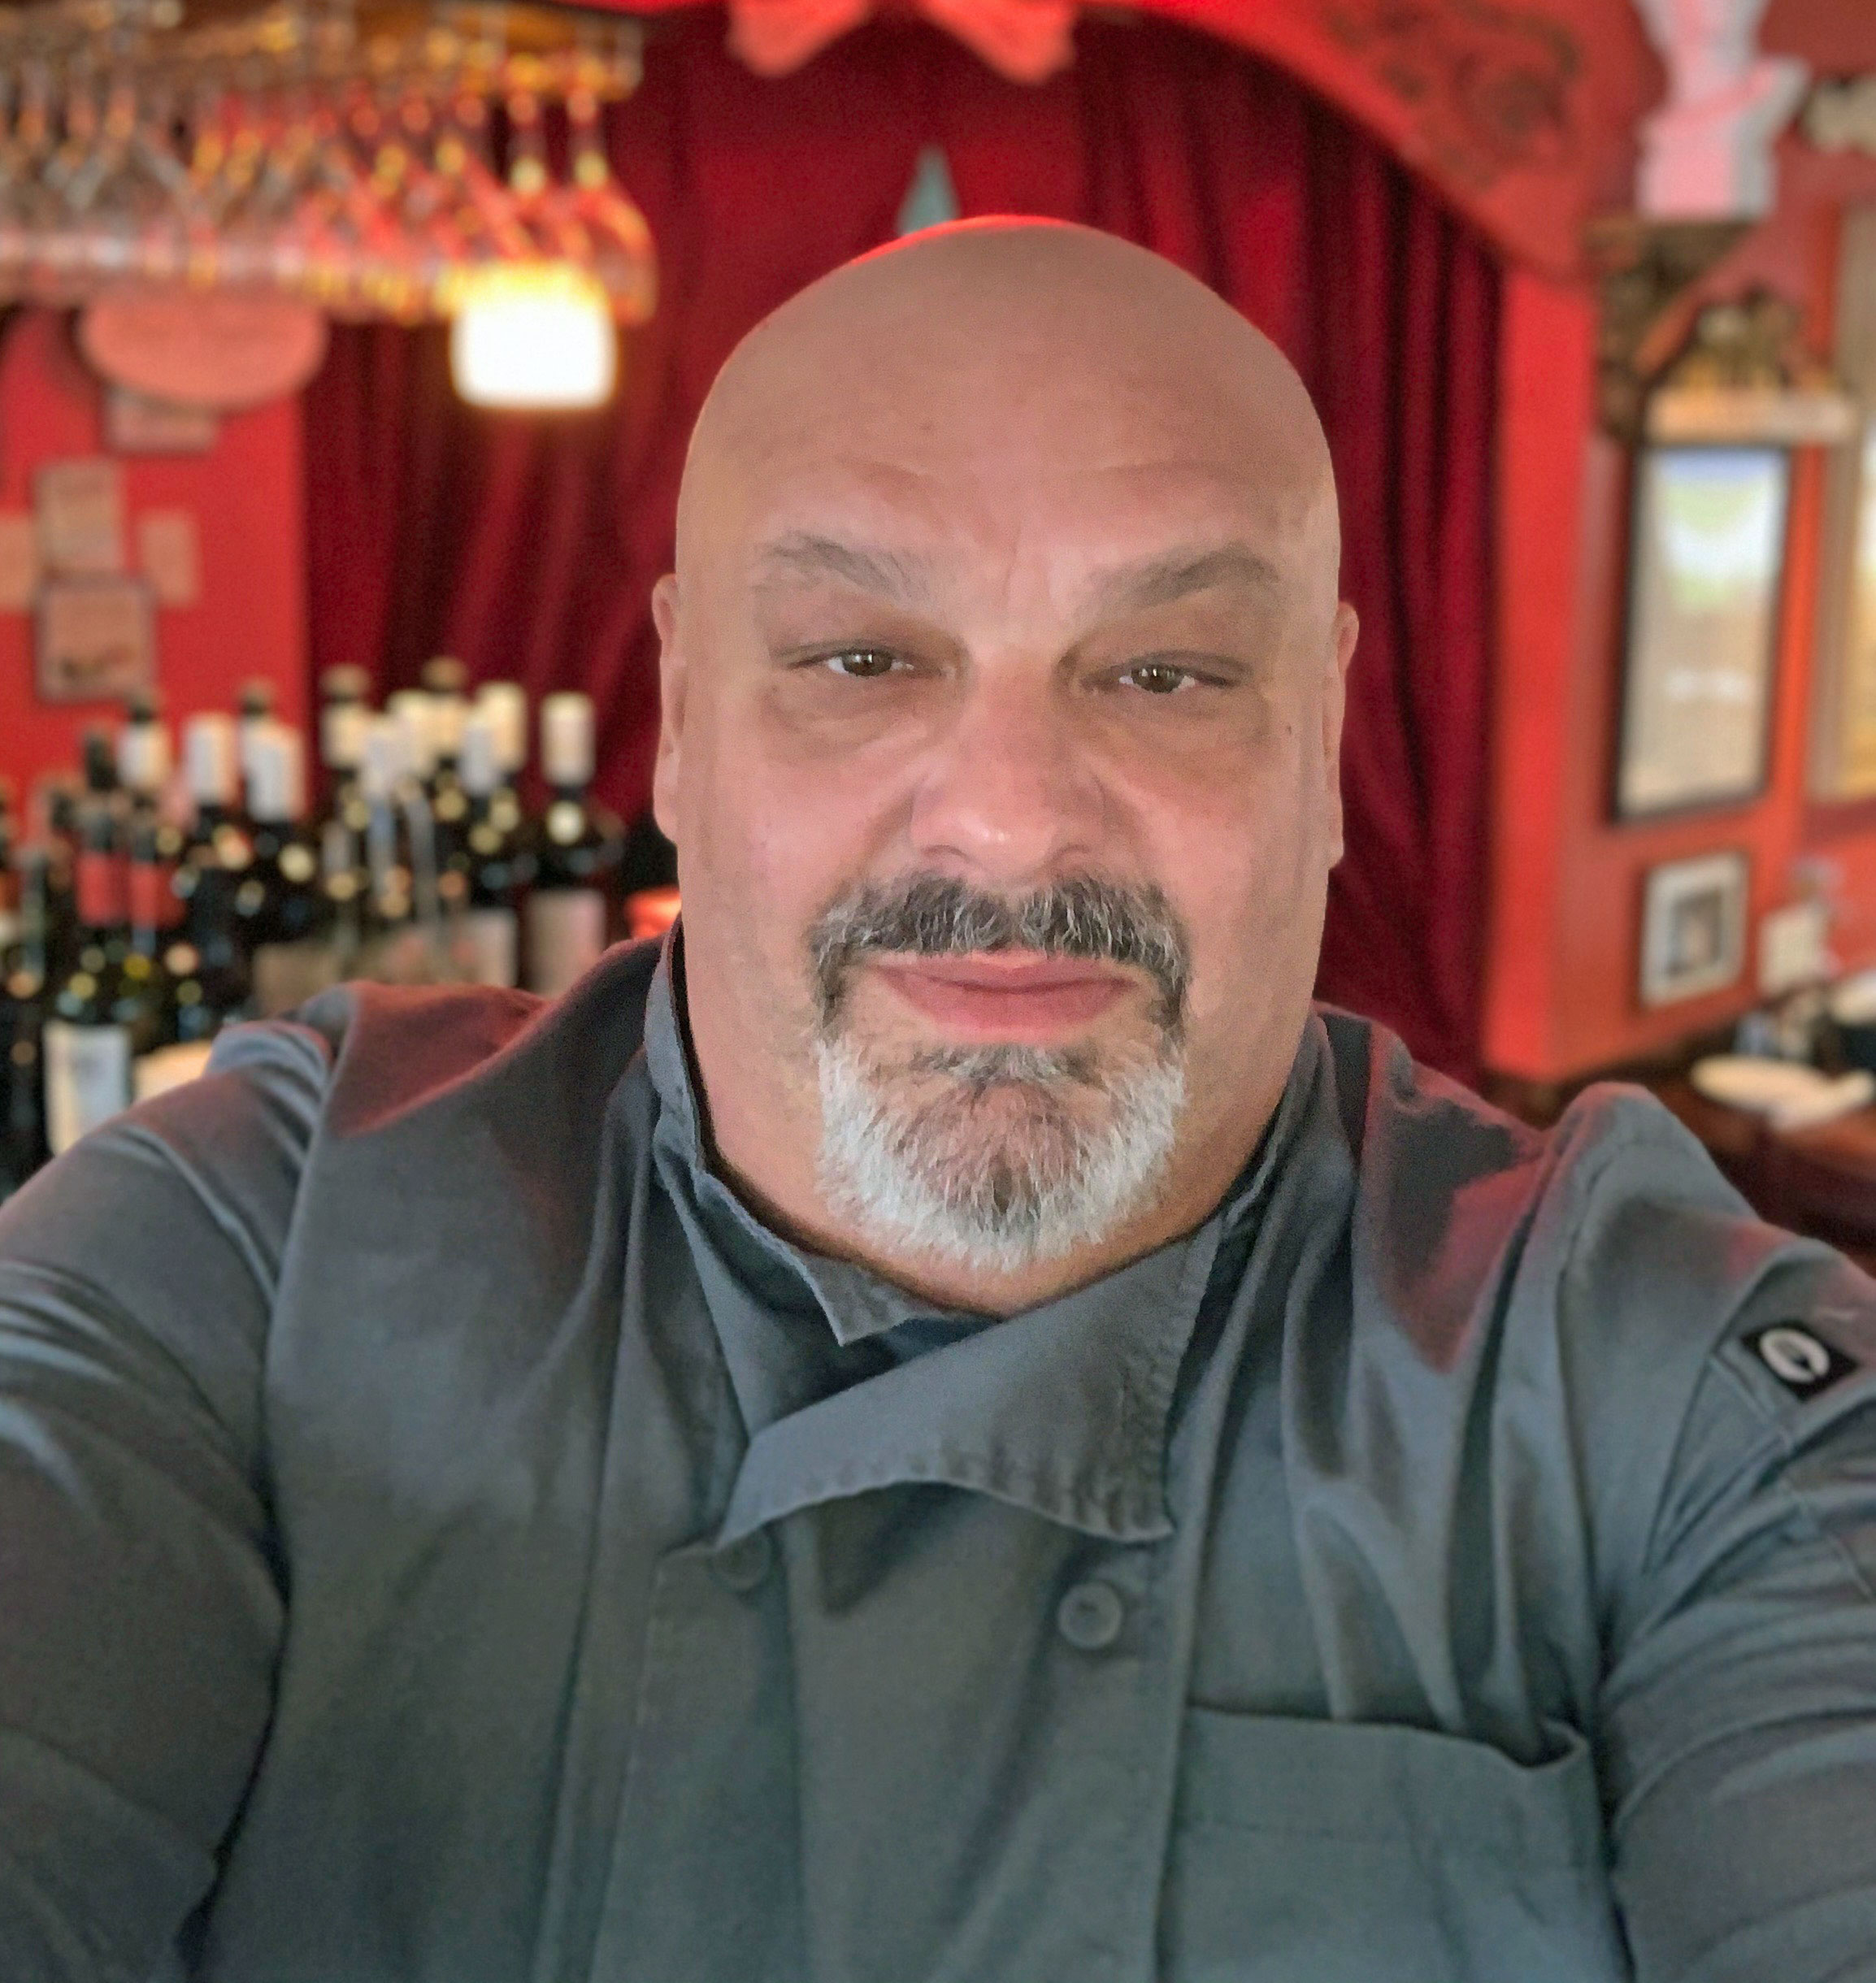 Frank Schittino - Owner / Chef at Cafe Cibo